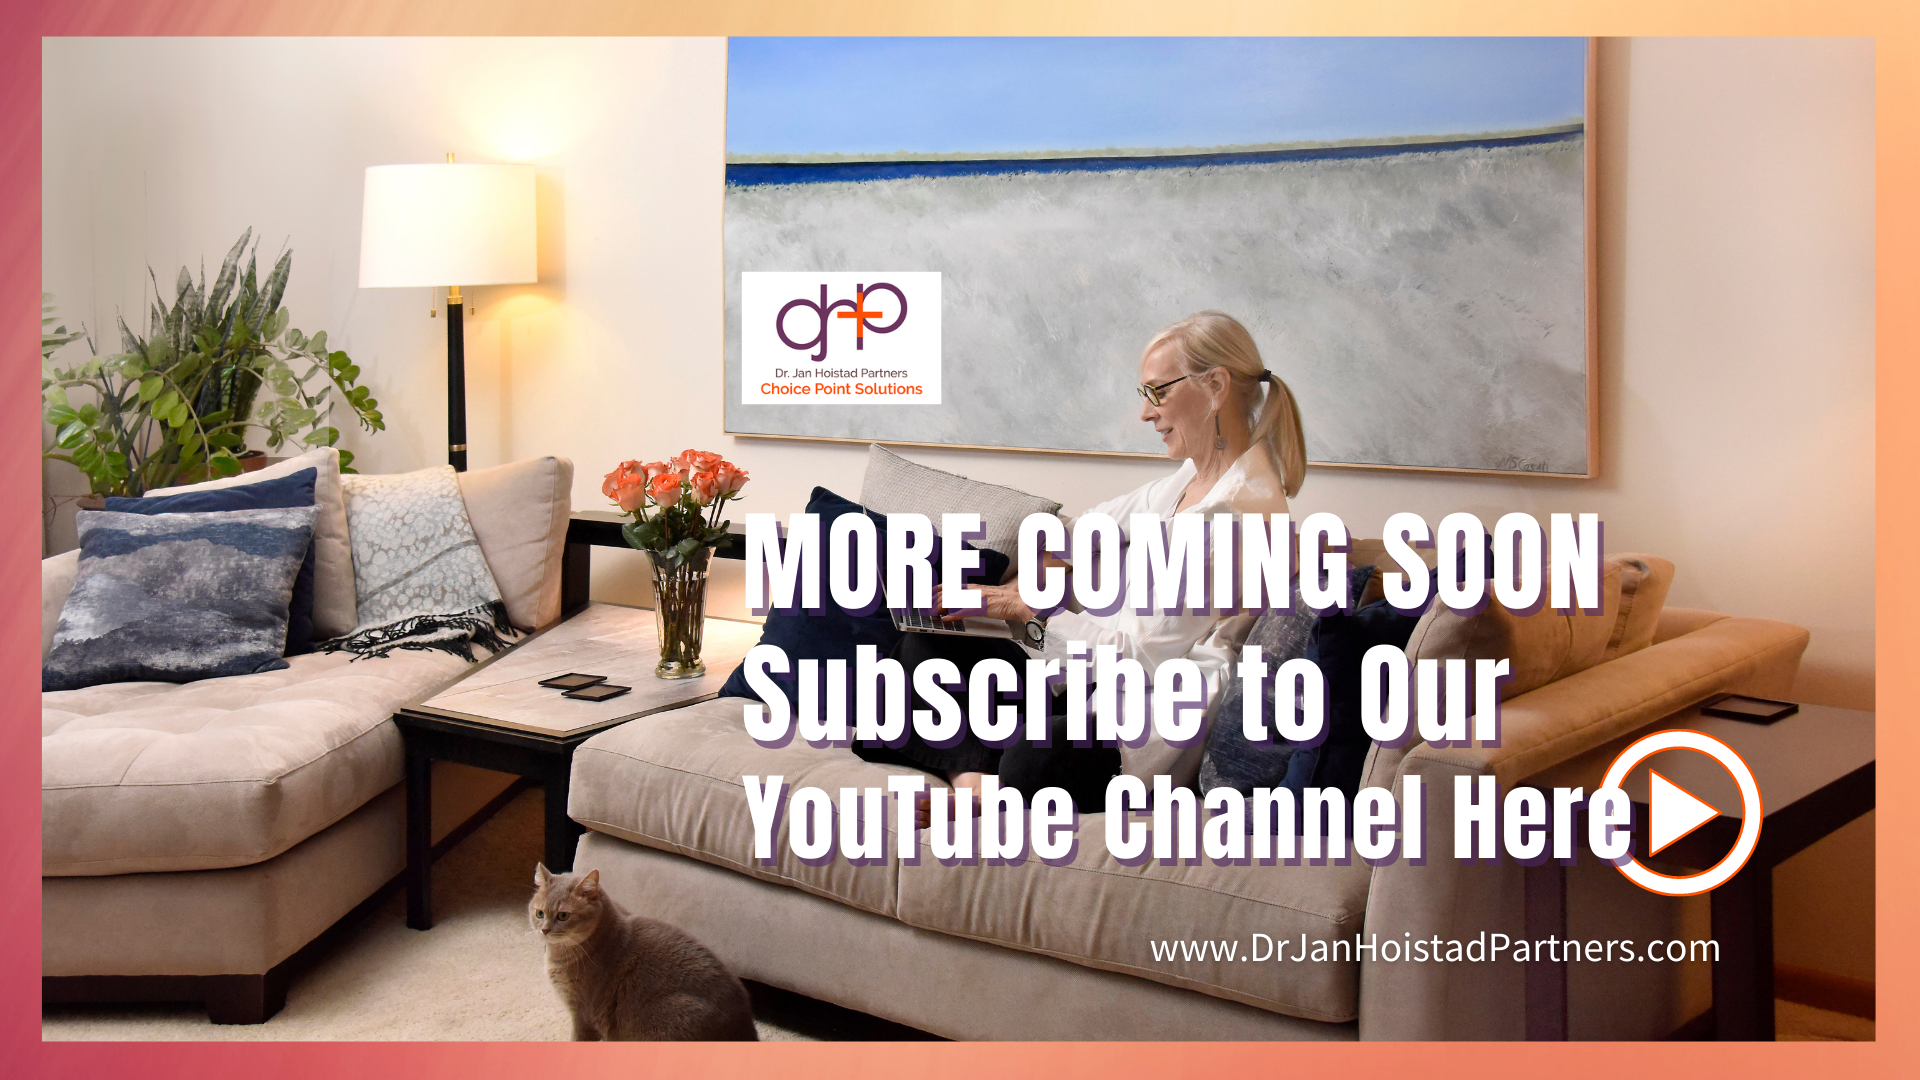 Subscribe to Dr. Jan Hoistad's YouTube Channel